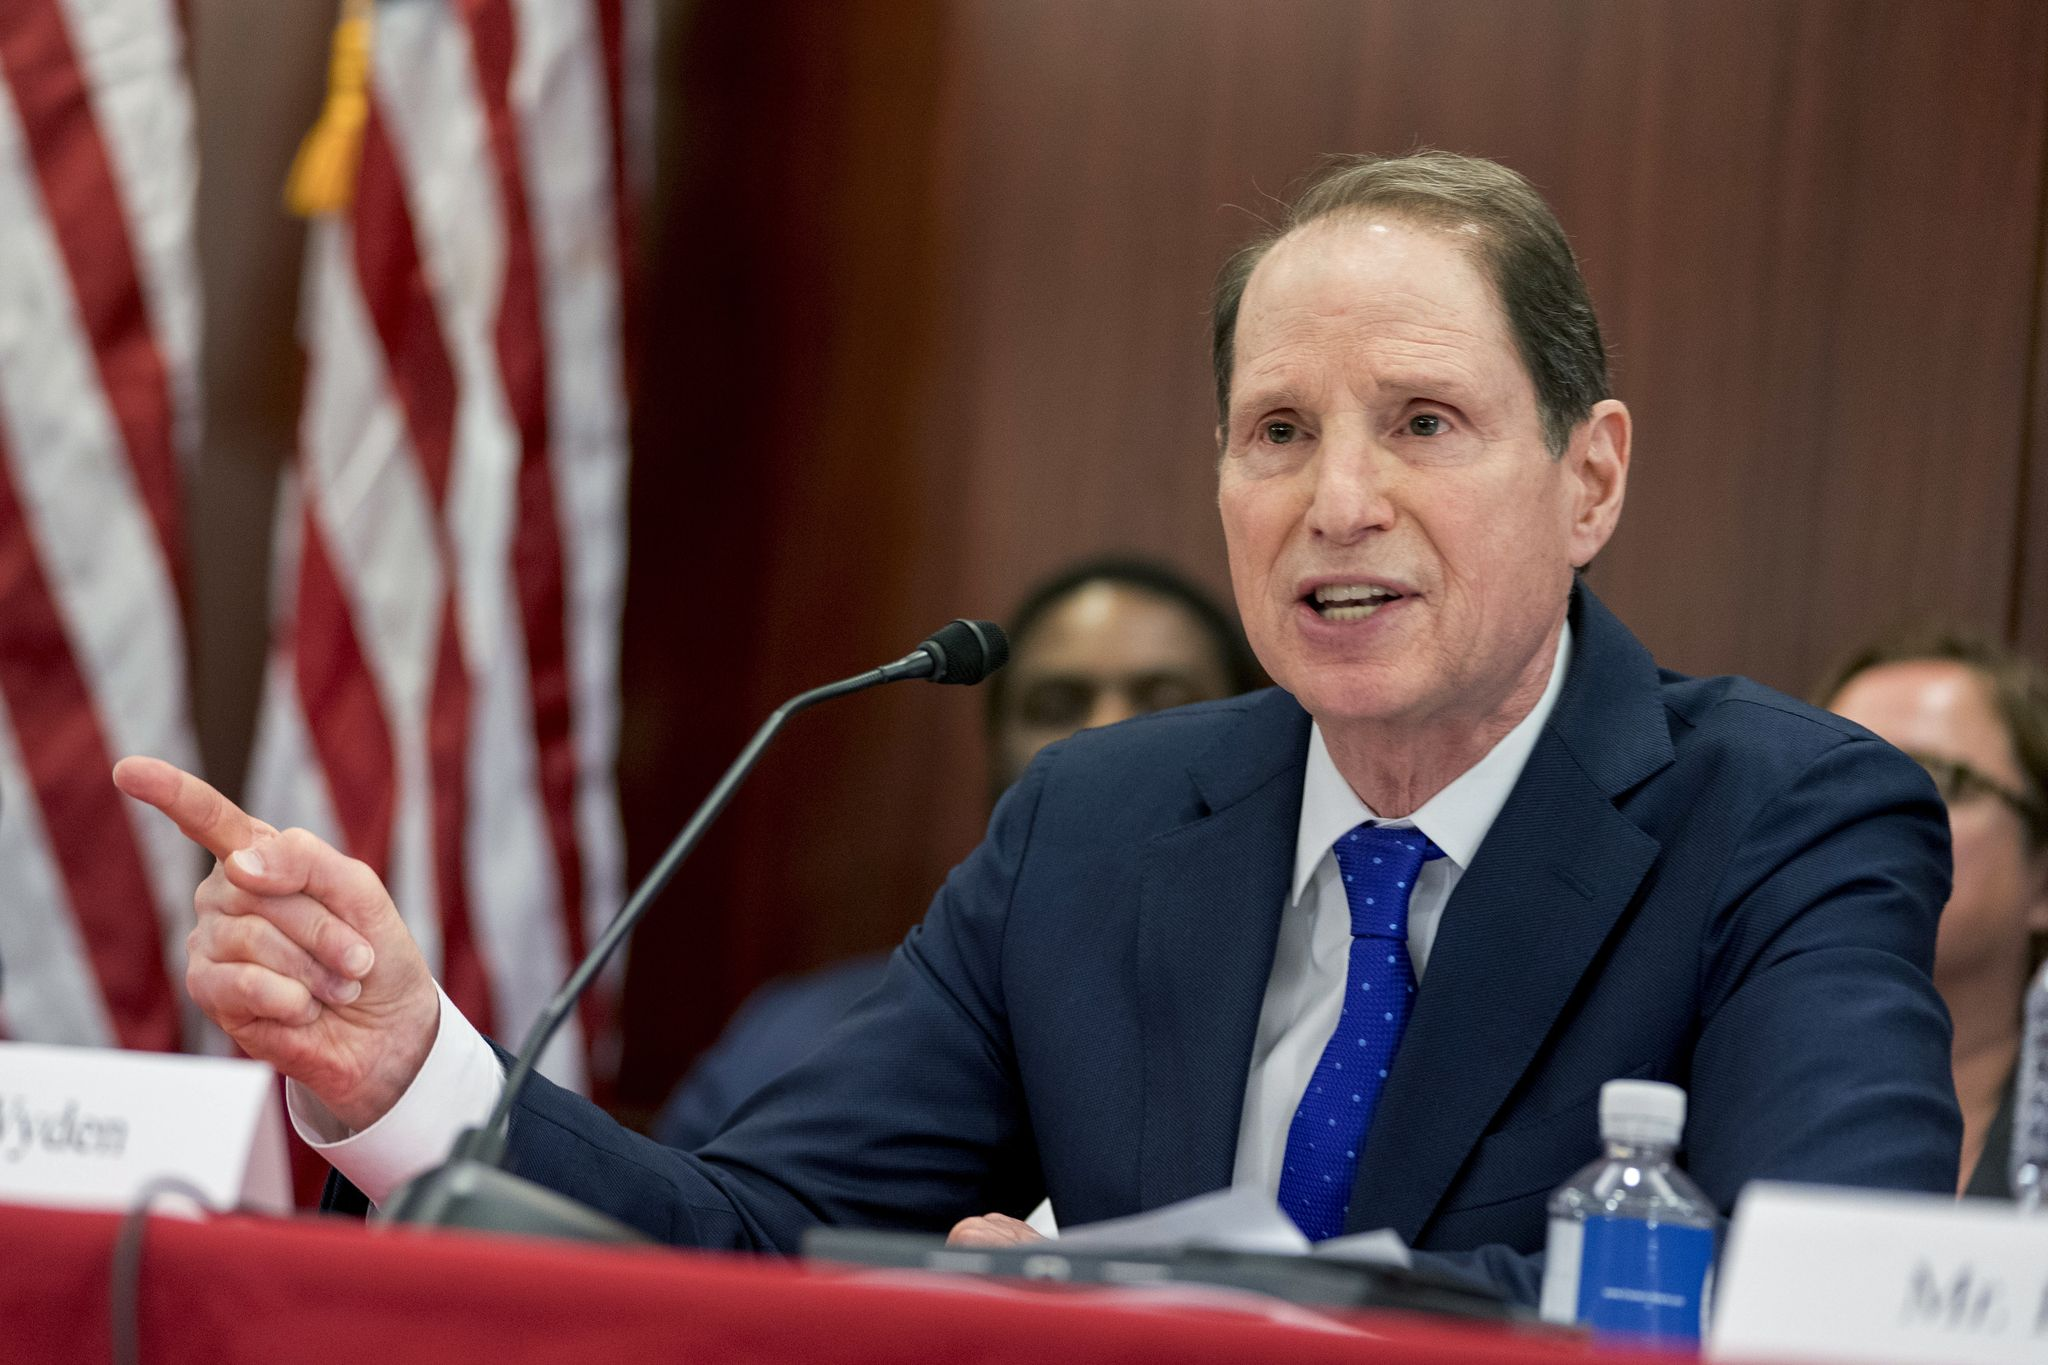 Congress should 'seize the moment' and legalize marijuana after Canada: Ron Wyden